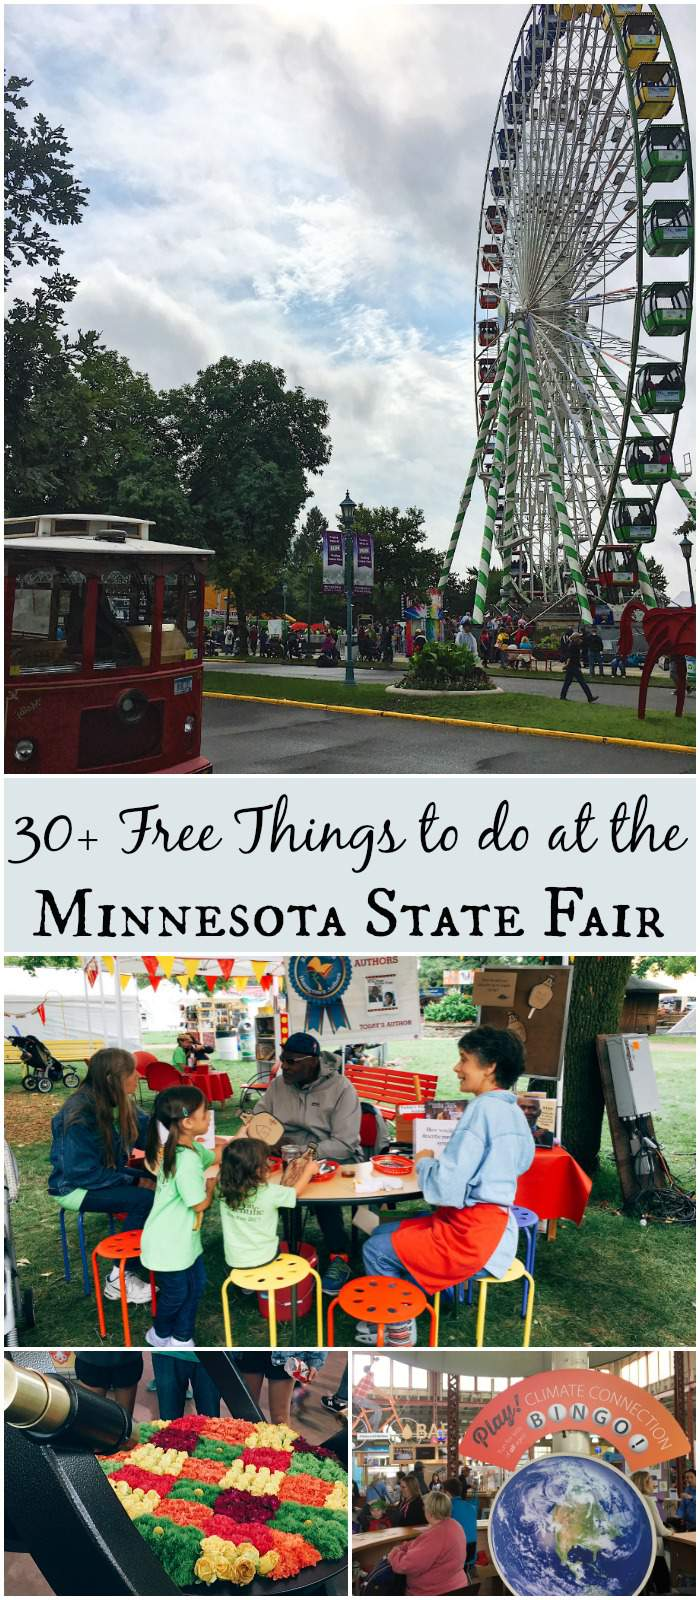 30+ Free Things to do at the Minnesota State Fair